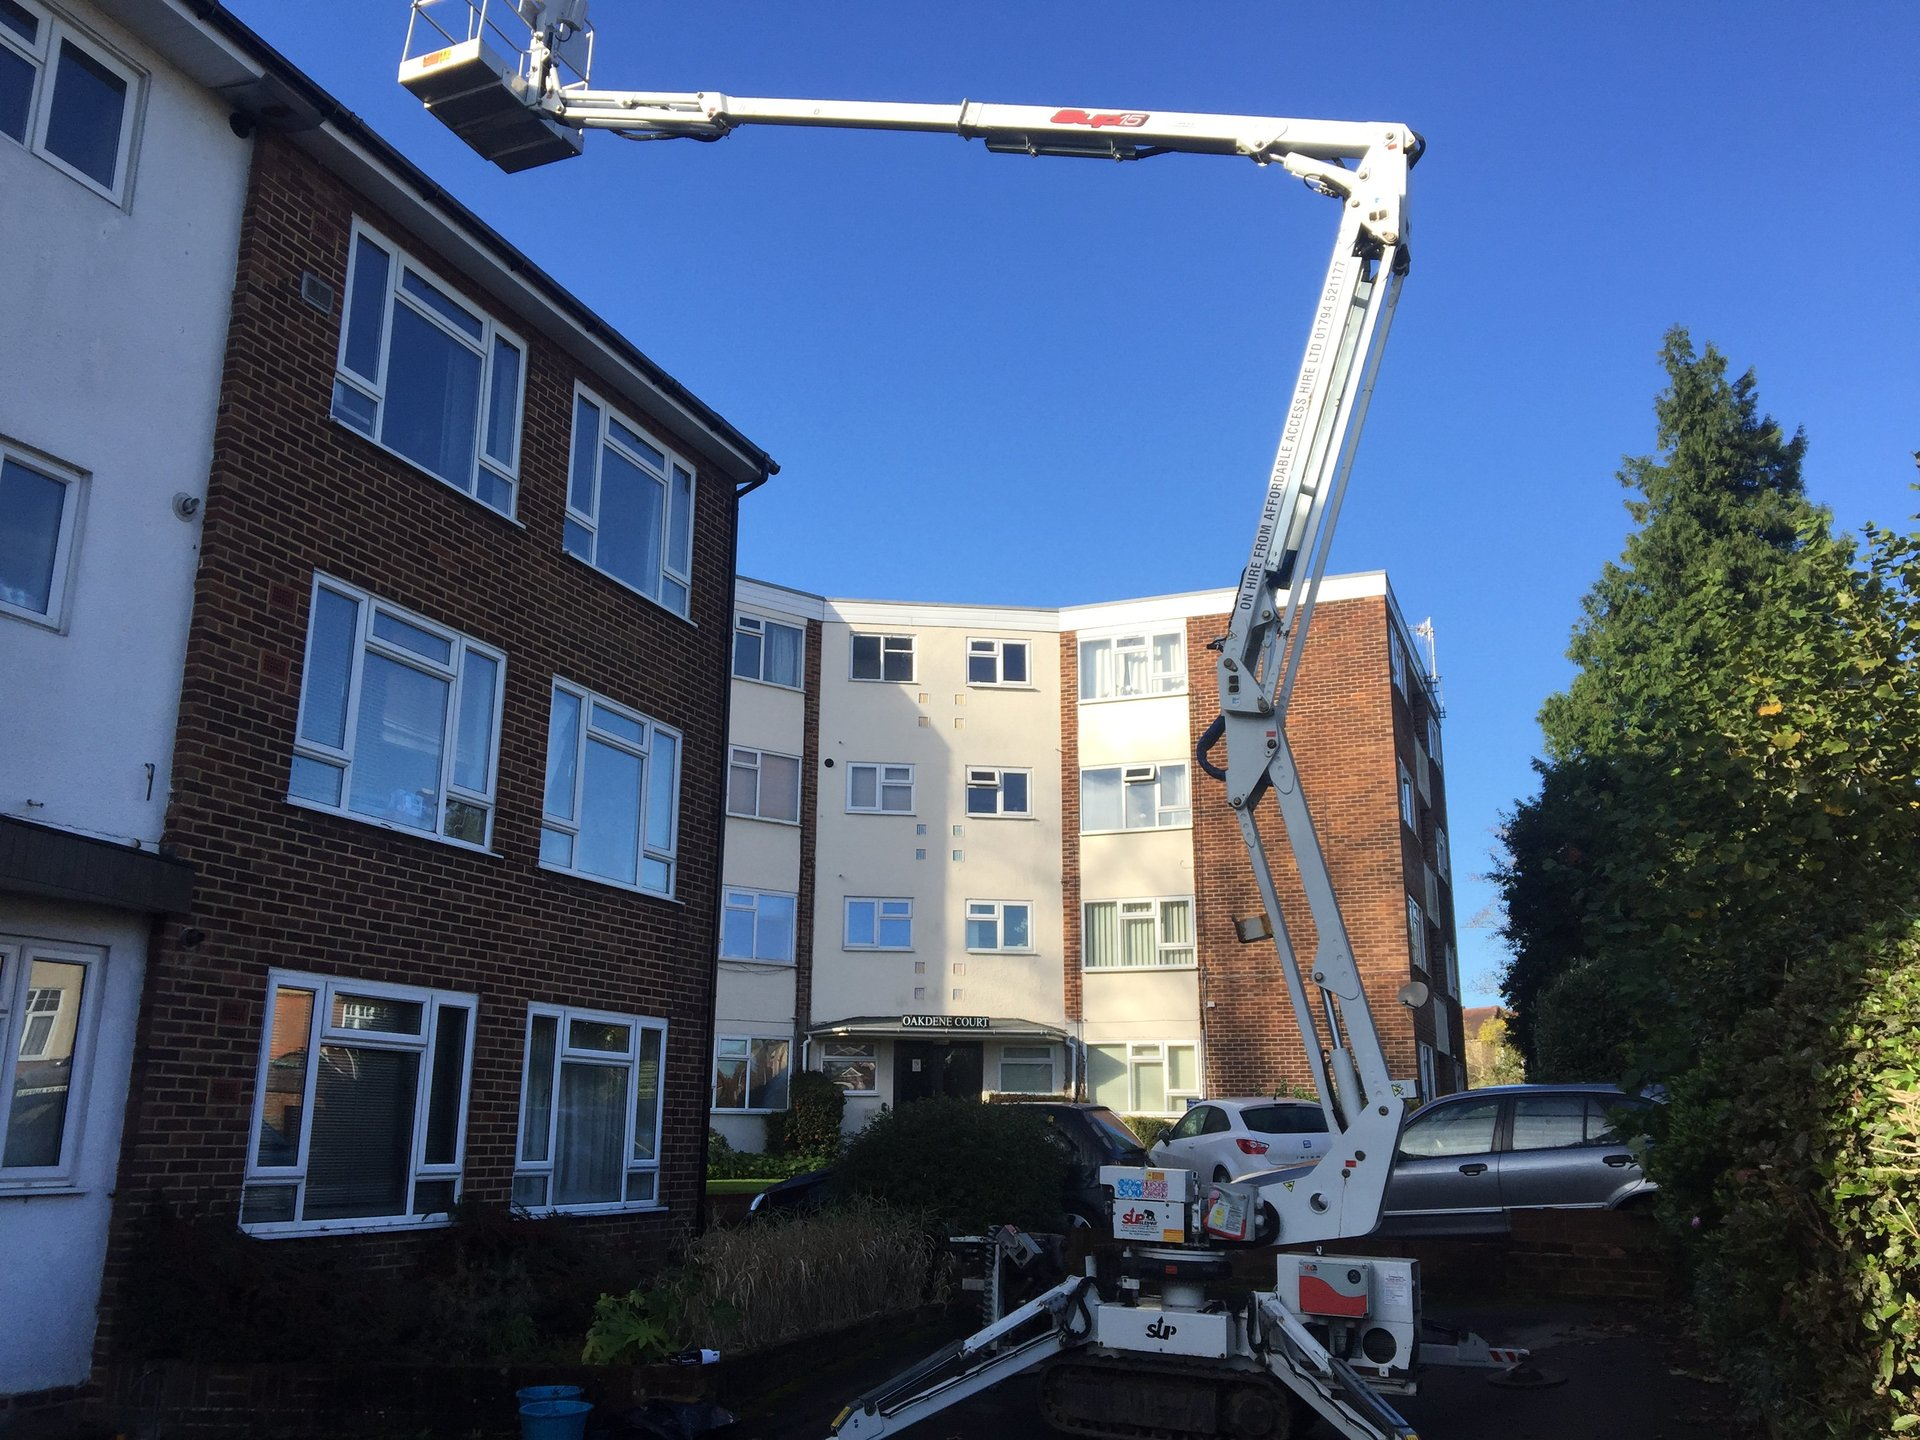 Commercial Gutter Cleaning Southampton Portsmouth